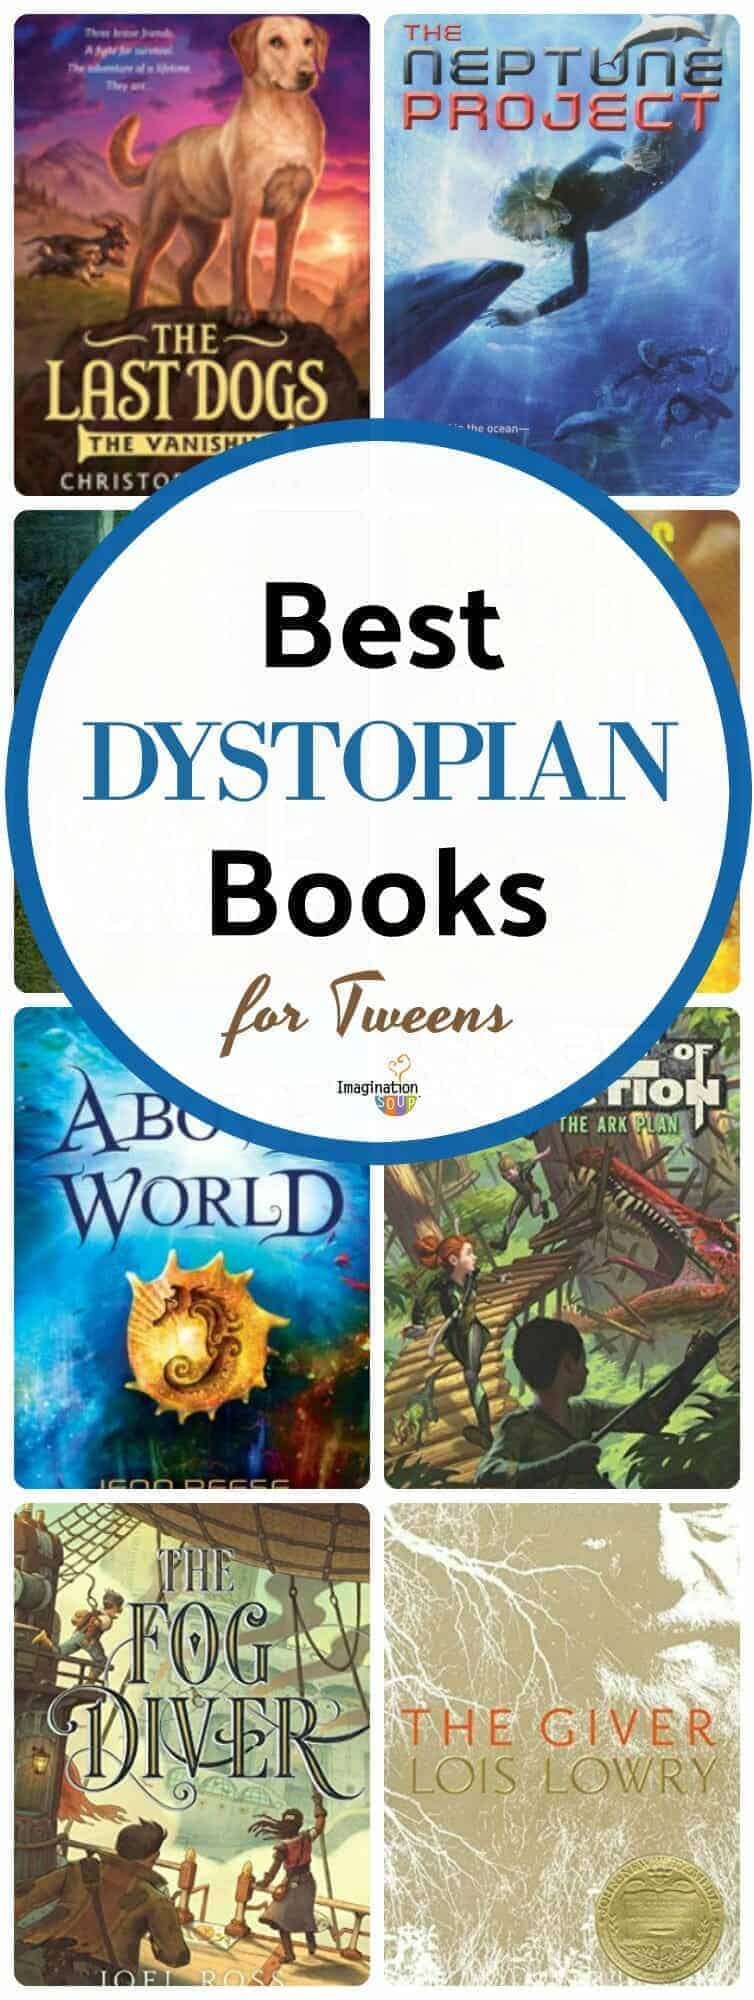 best dystopian middle grade chapter books for tweens (ages 9 - 12)